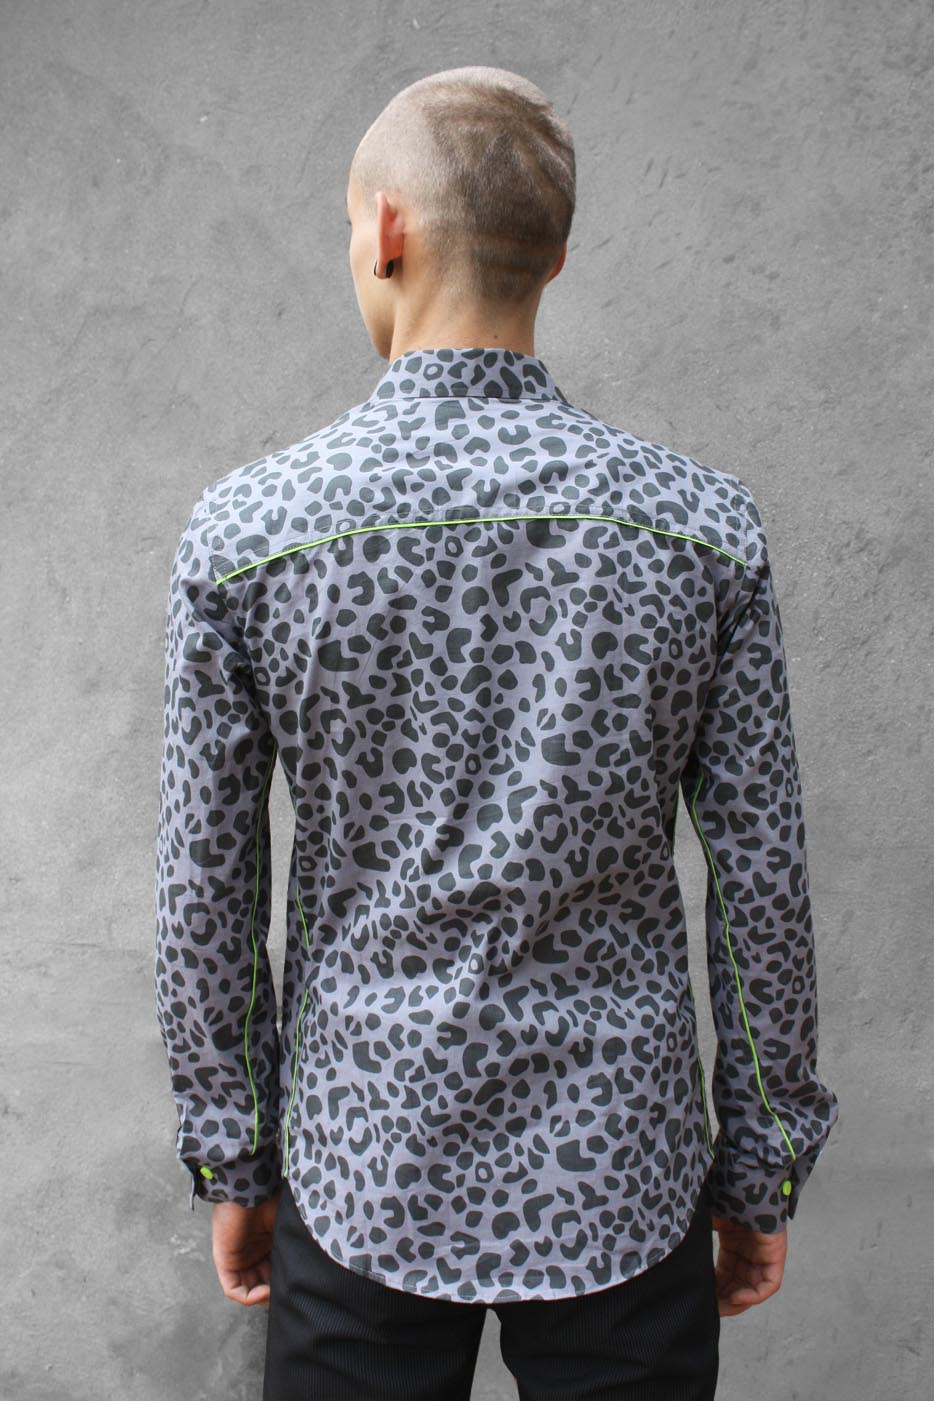 f9f6287f8fb0 Baïsap - Grey Leopard print shirt - Leopard print shirt for men ...